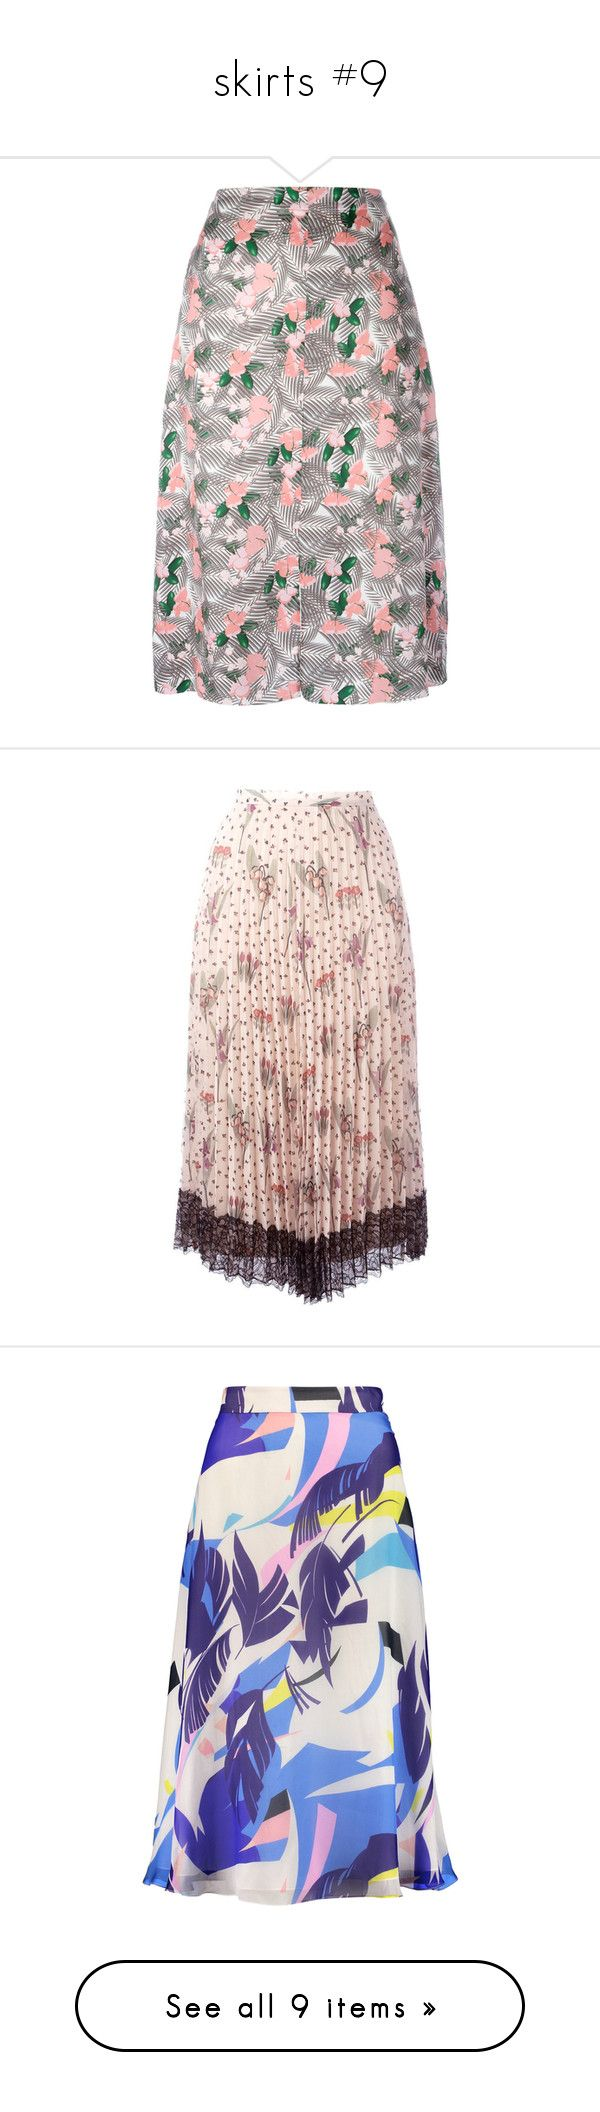 """skirts #9"" by julidrops ❤ liked on Polyvore featuring skirts, red, red valentino skirt, multi color skirt, floral knee length skirt, pleated skirt, pink floral skirt, multi, midi skirt and floral print midi skirt"